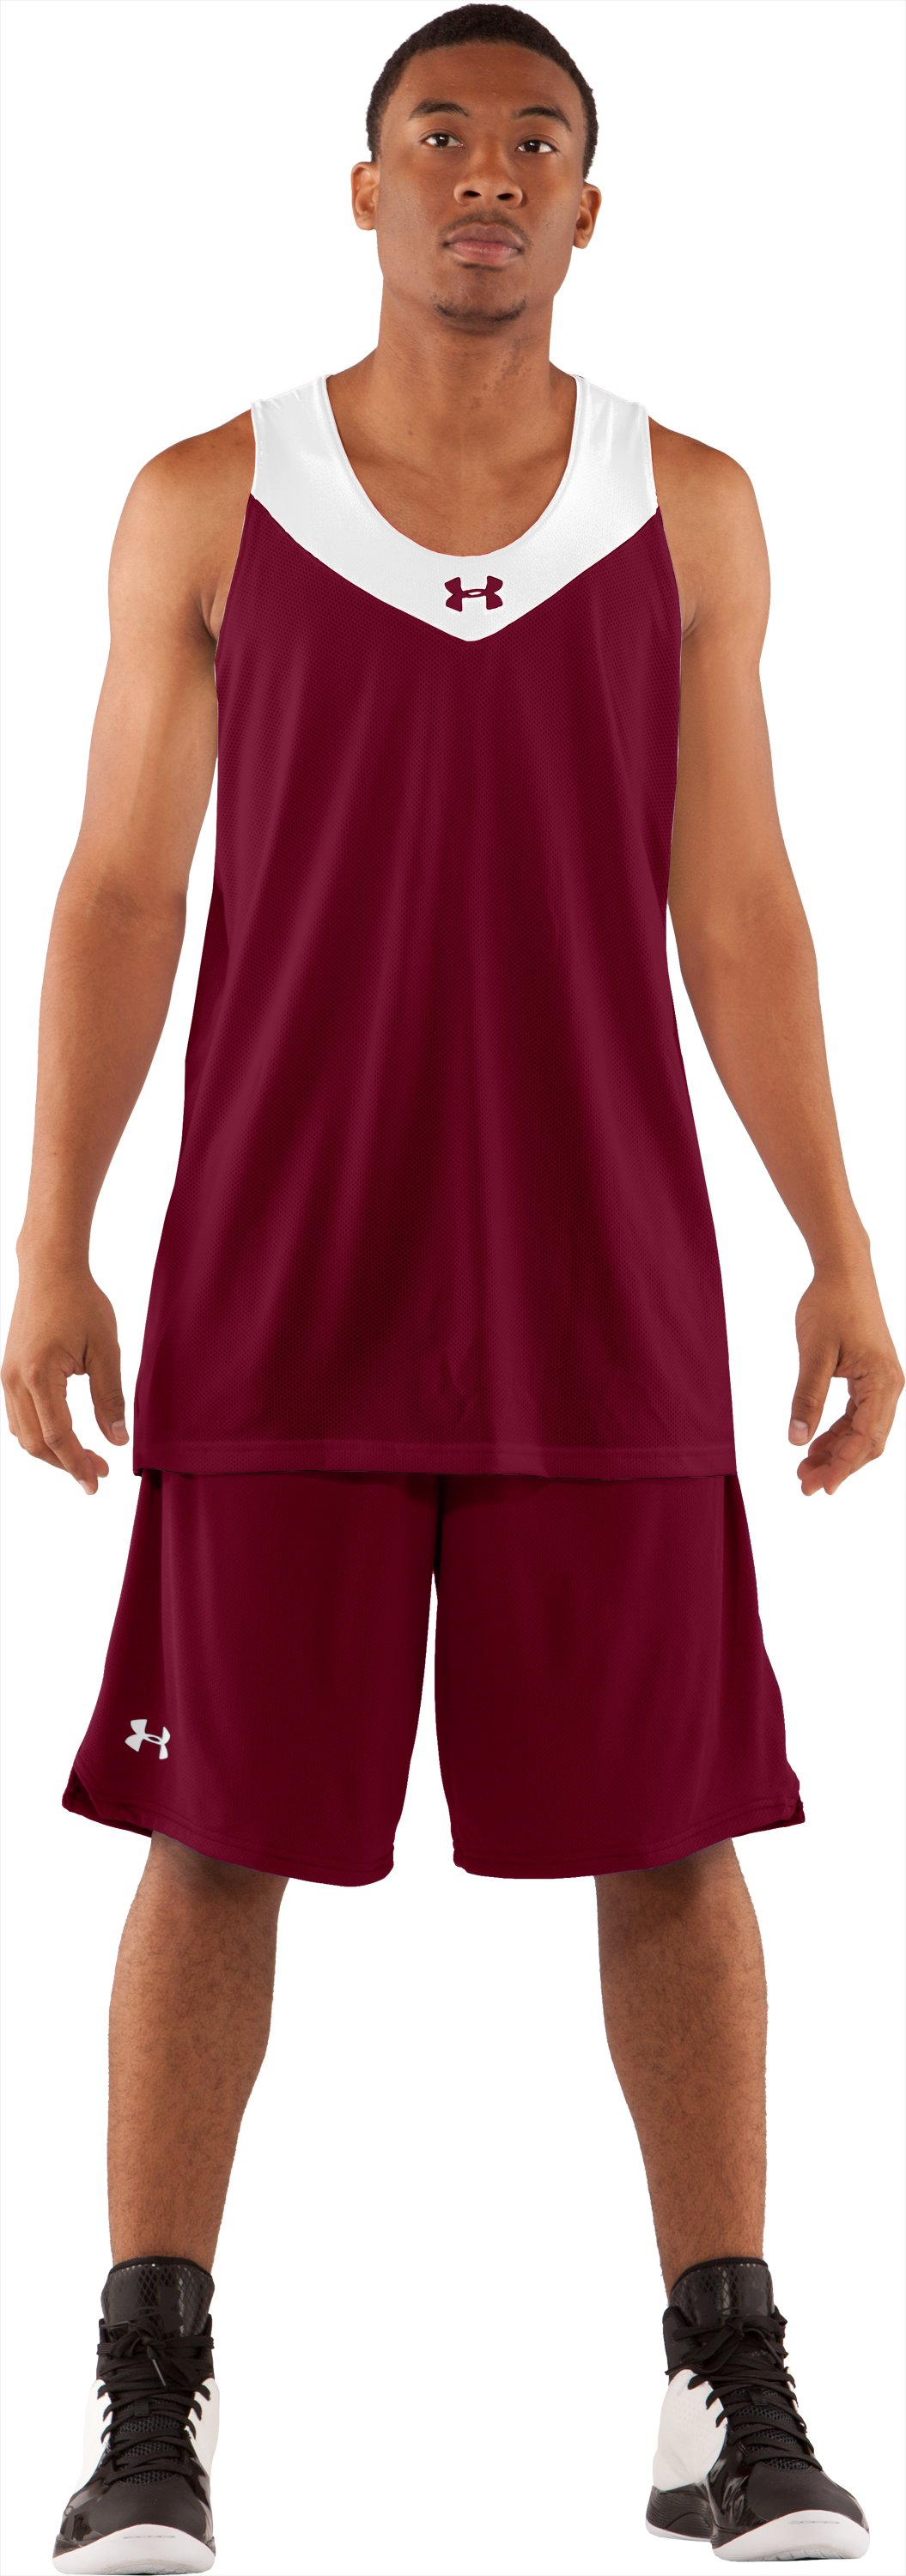 Men's Repeat Reversible Basketball Jersey, Maroon, Front